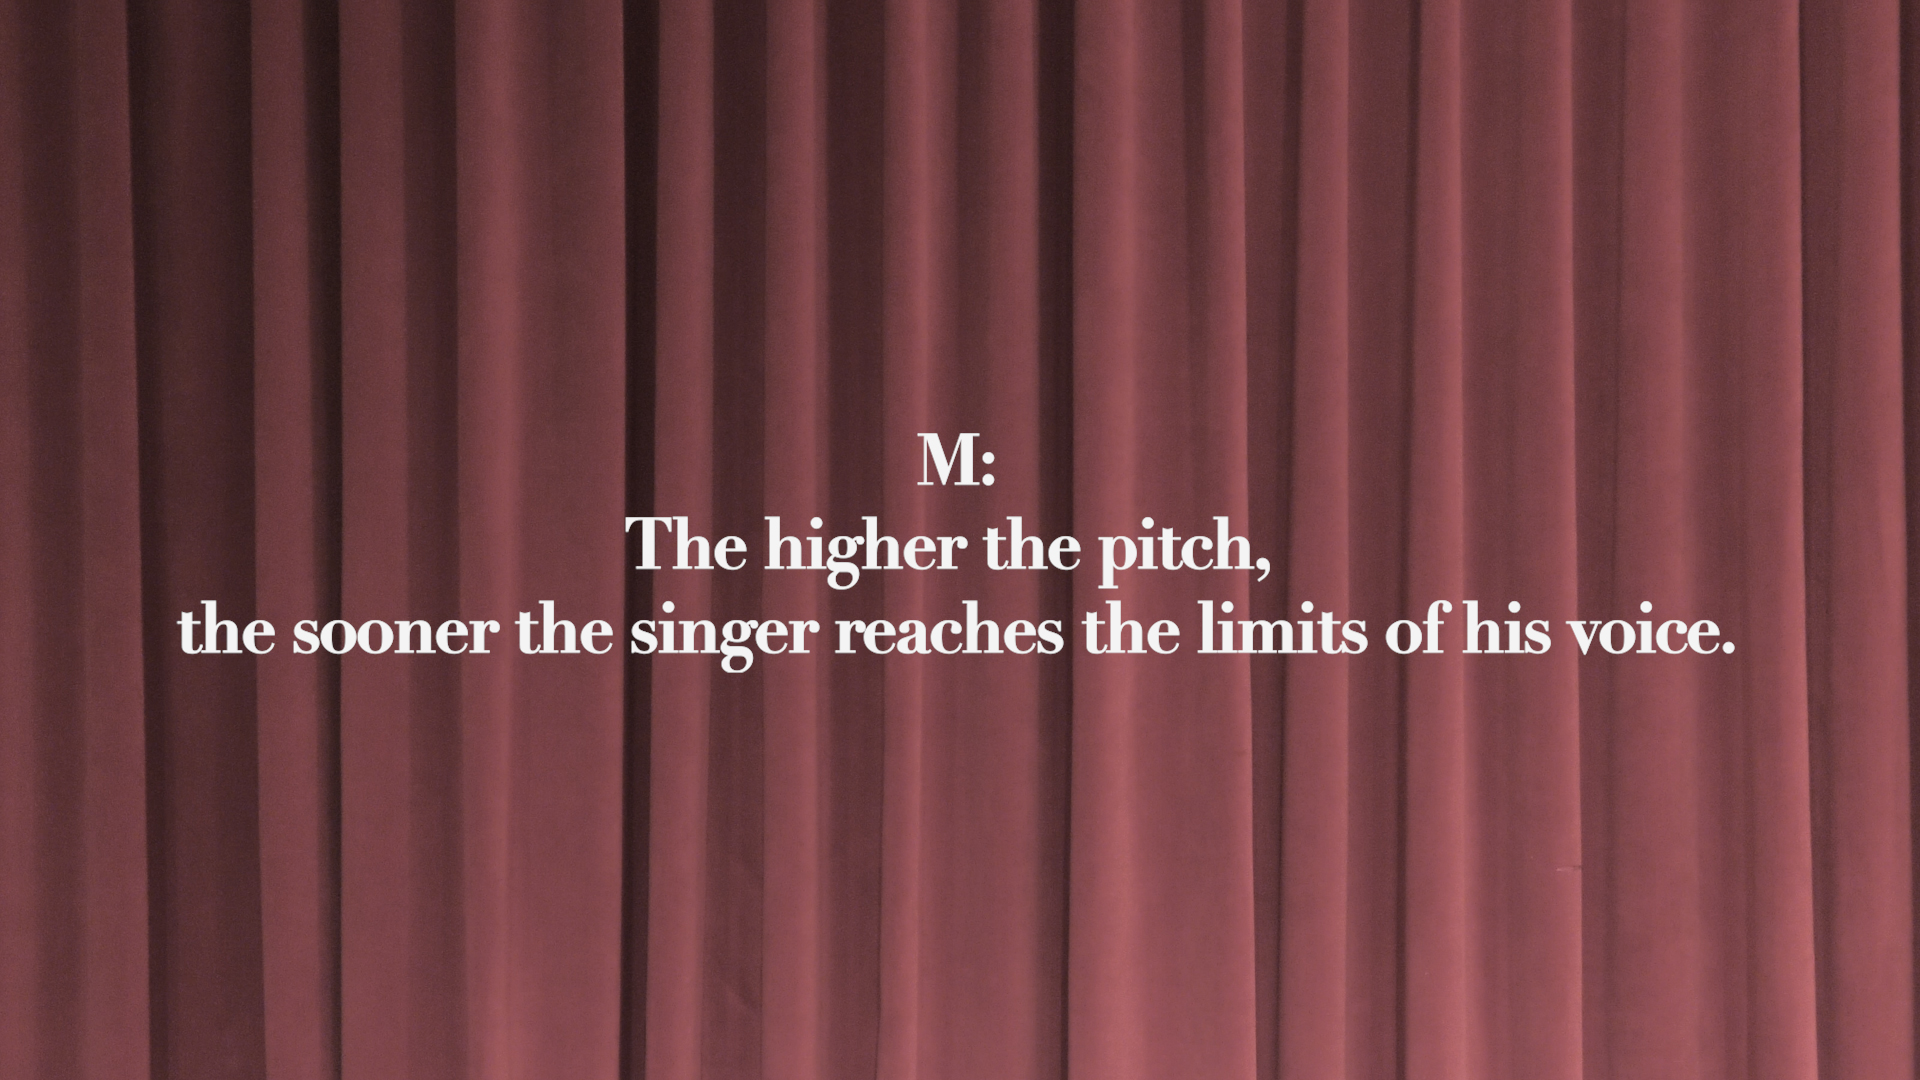 This image features a still of an artwork by YoungEun Kim. The still includes a dark burgundy, curtain-esque background with text in white saying M: The higher the pitch, the sooner the singer reaches the limits of his voice.